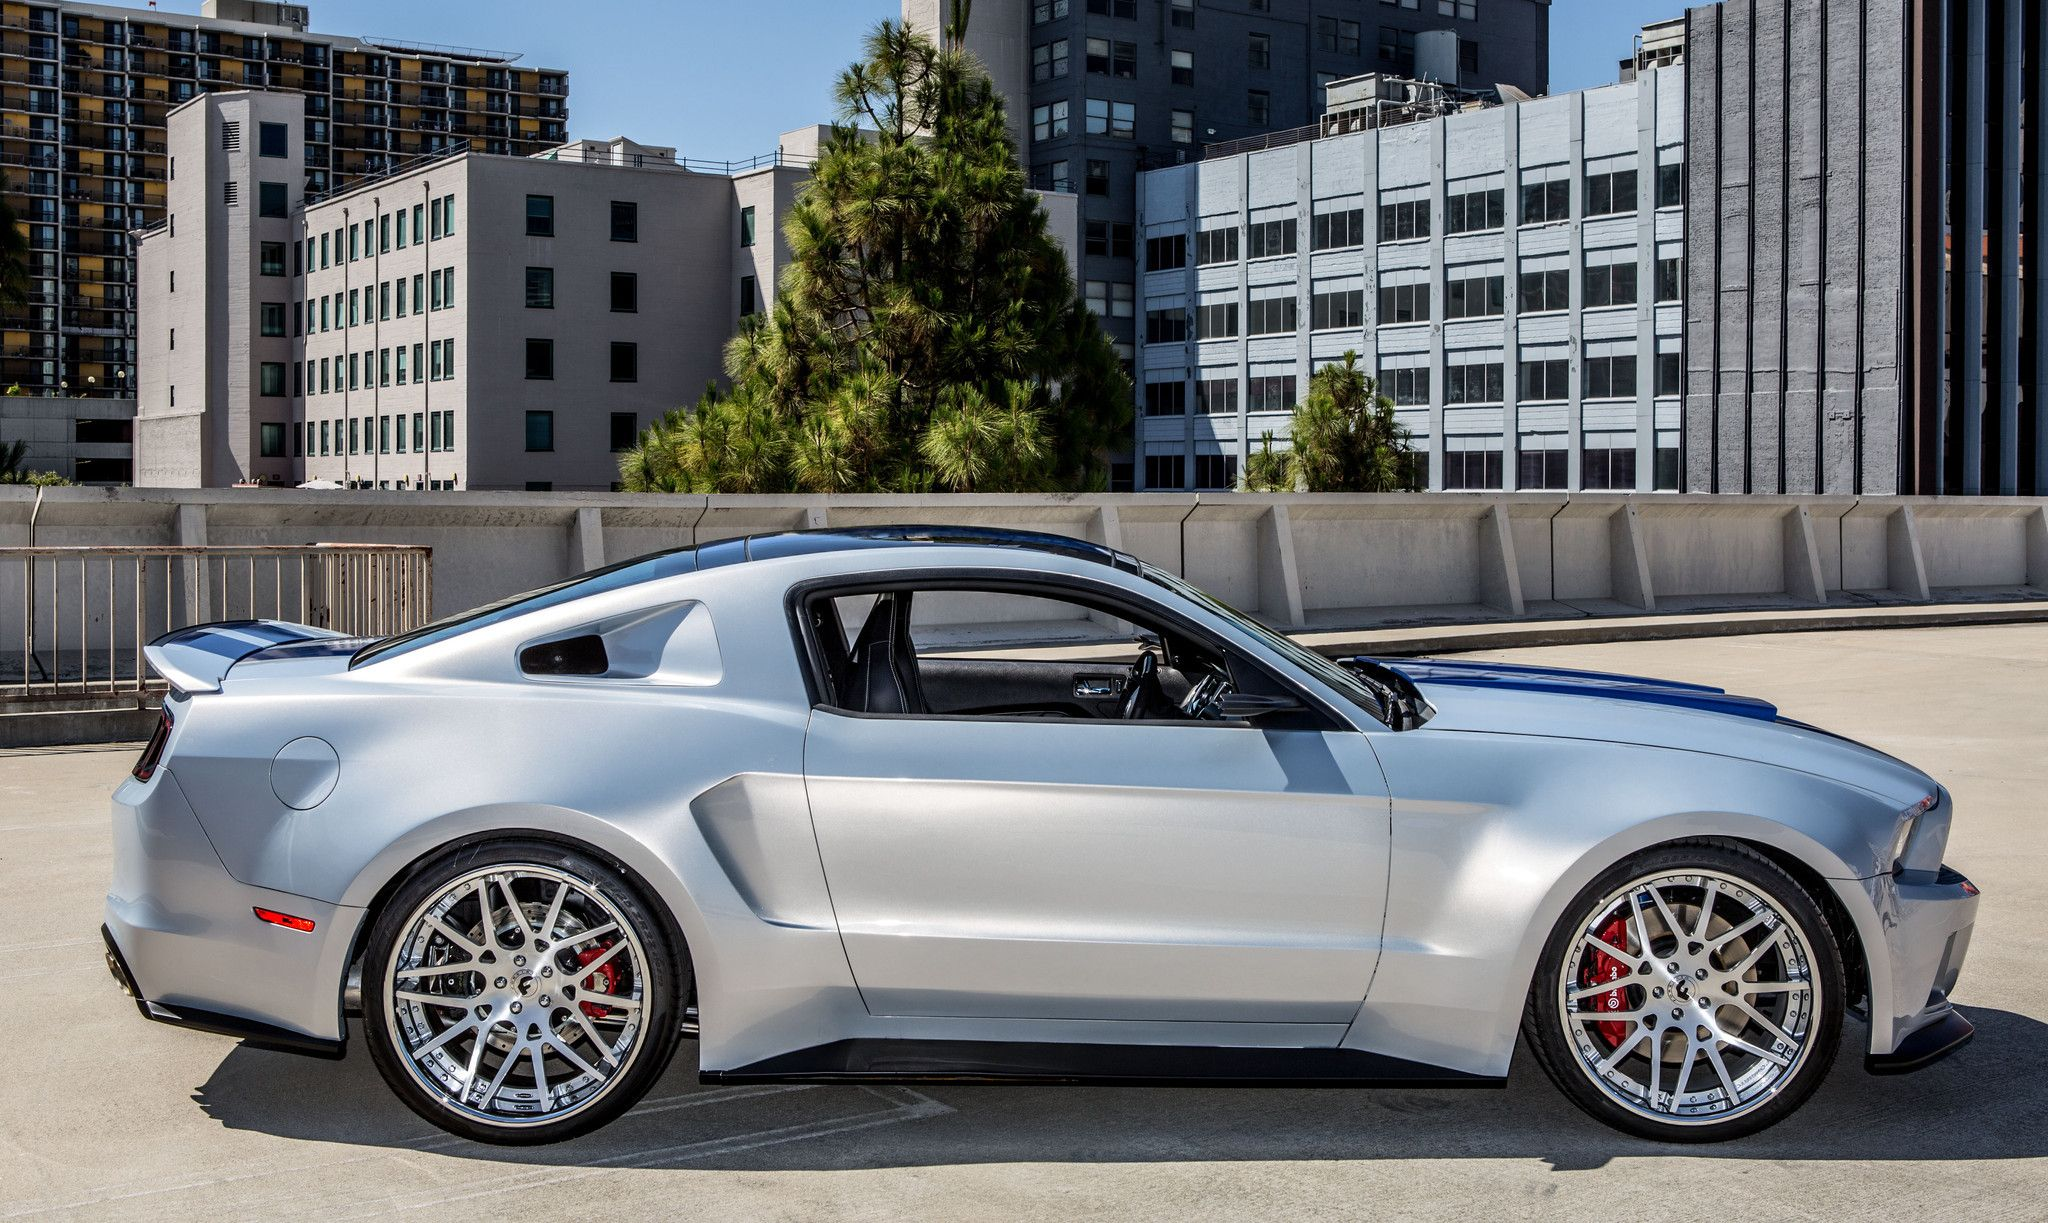 architecture and mustang art perfect together mustang